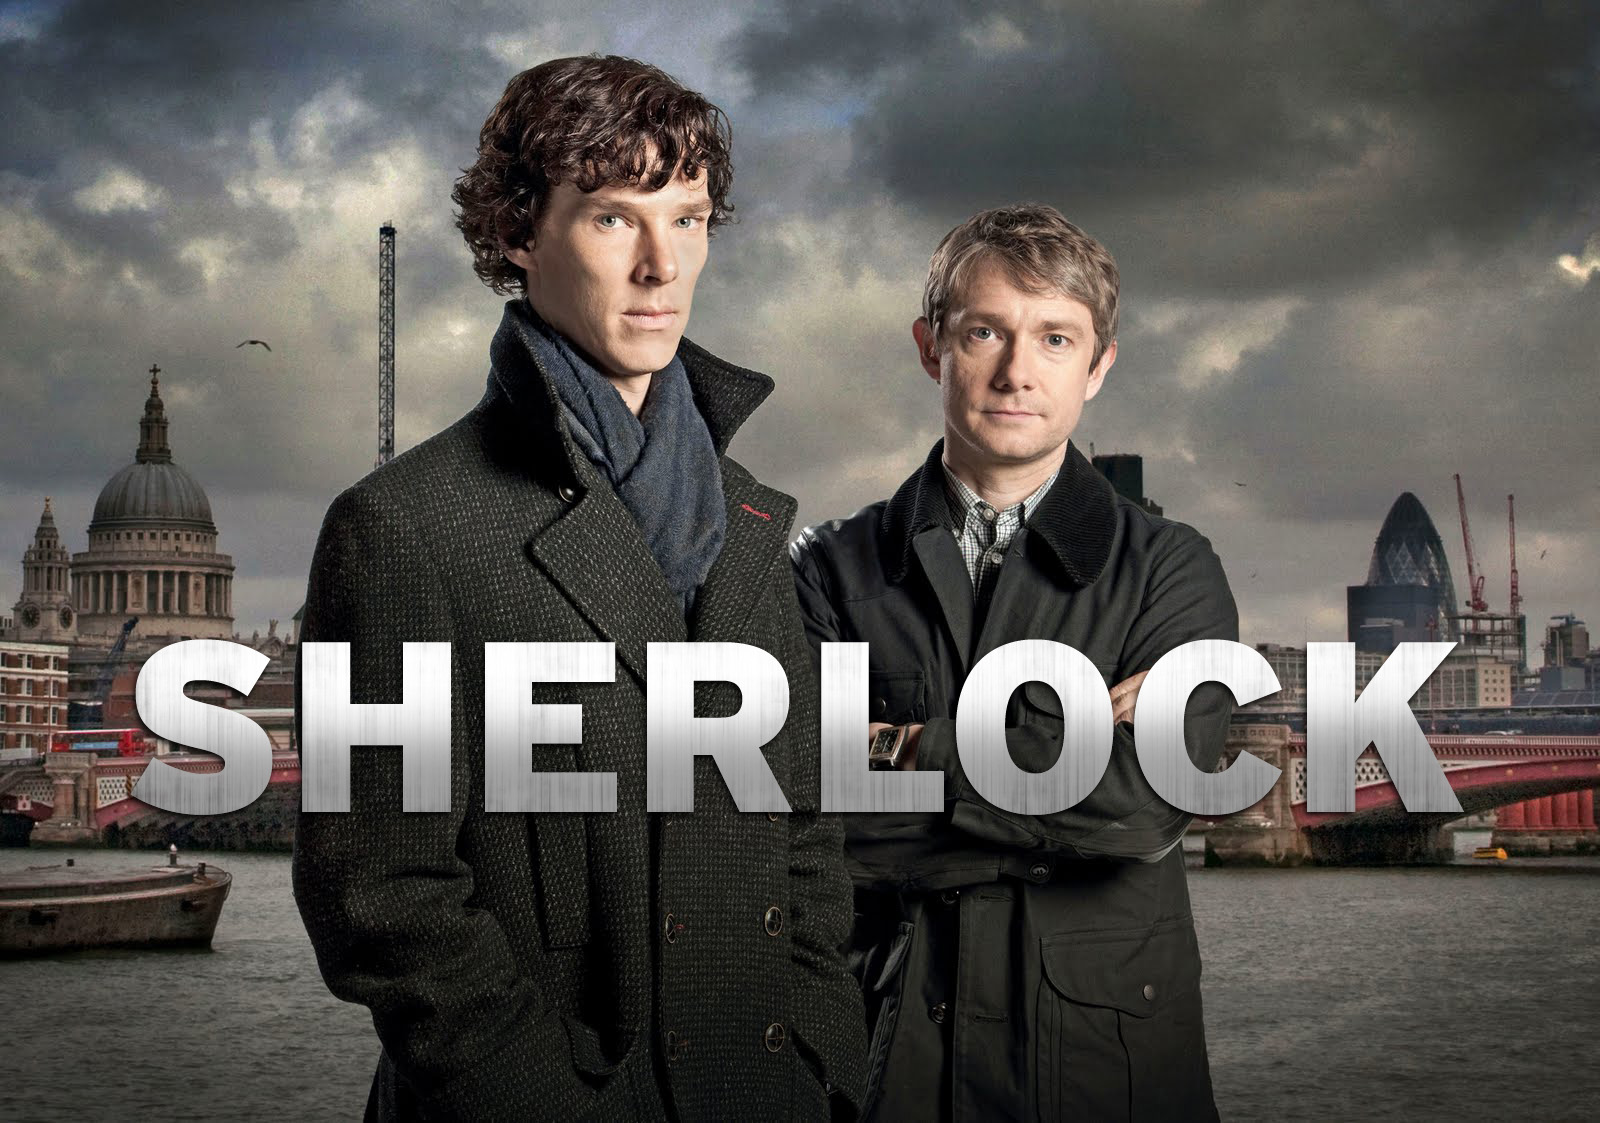 ABOMINABLE TÉLÉCHARGER BRIDE VOSTFR SHERLOCK THE